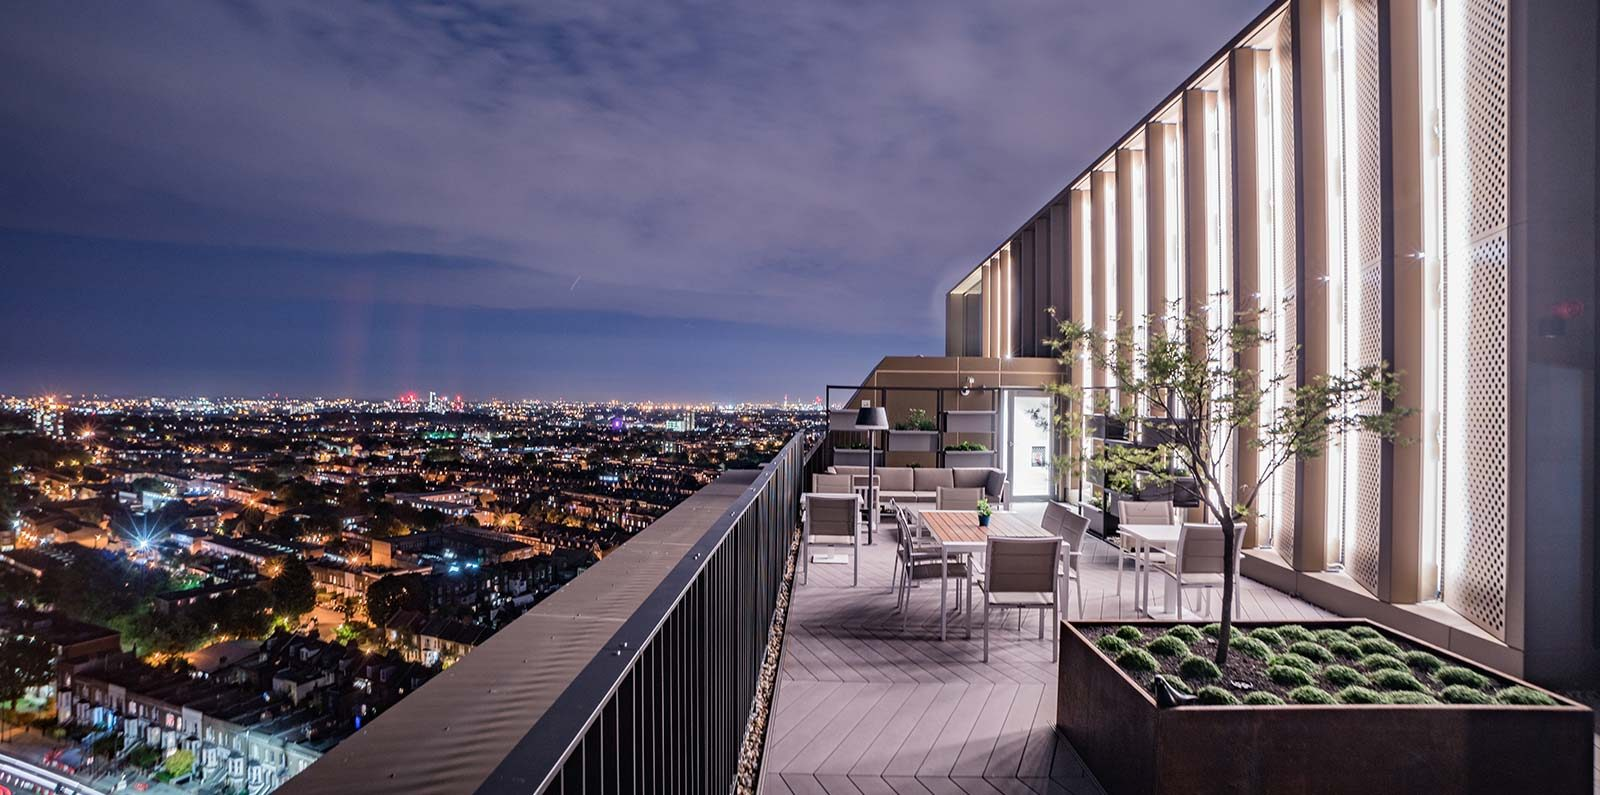 Home matiky architects london for 24543 vantage point terrace